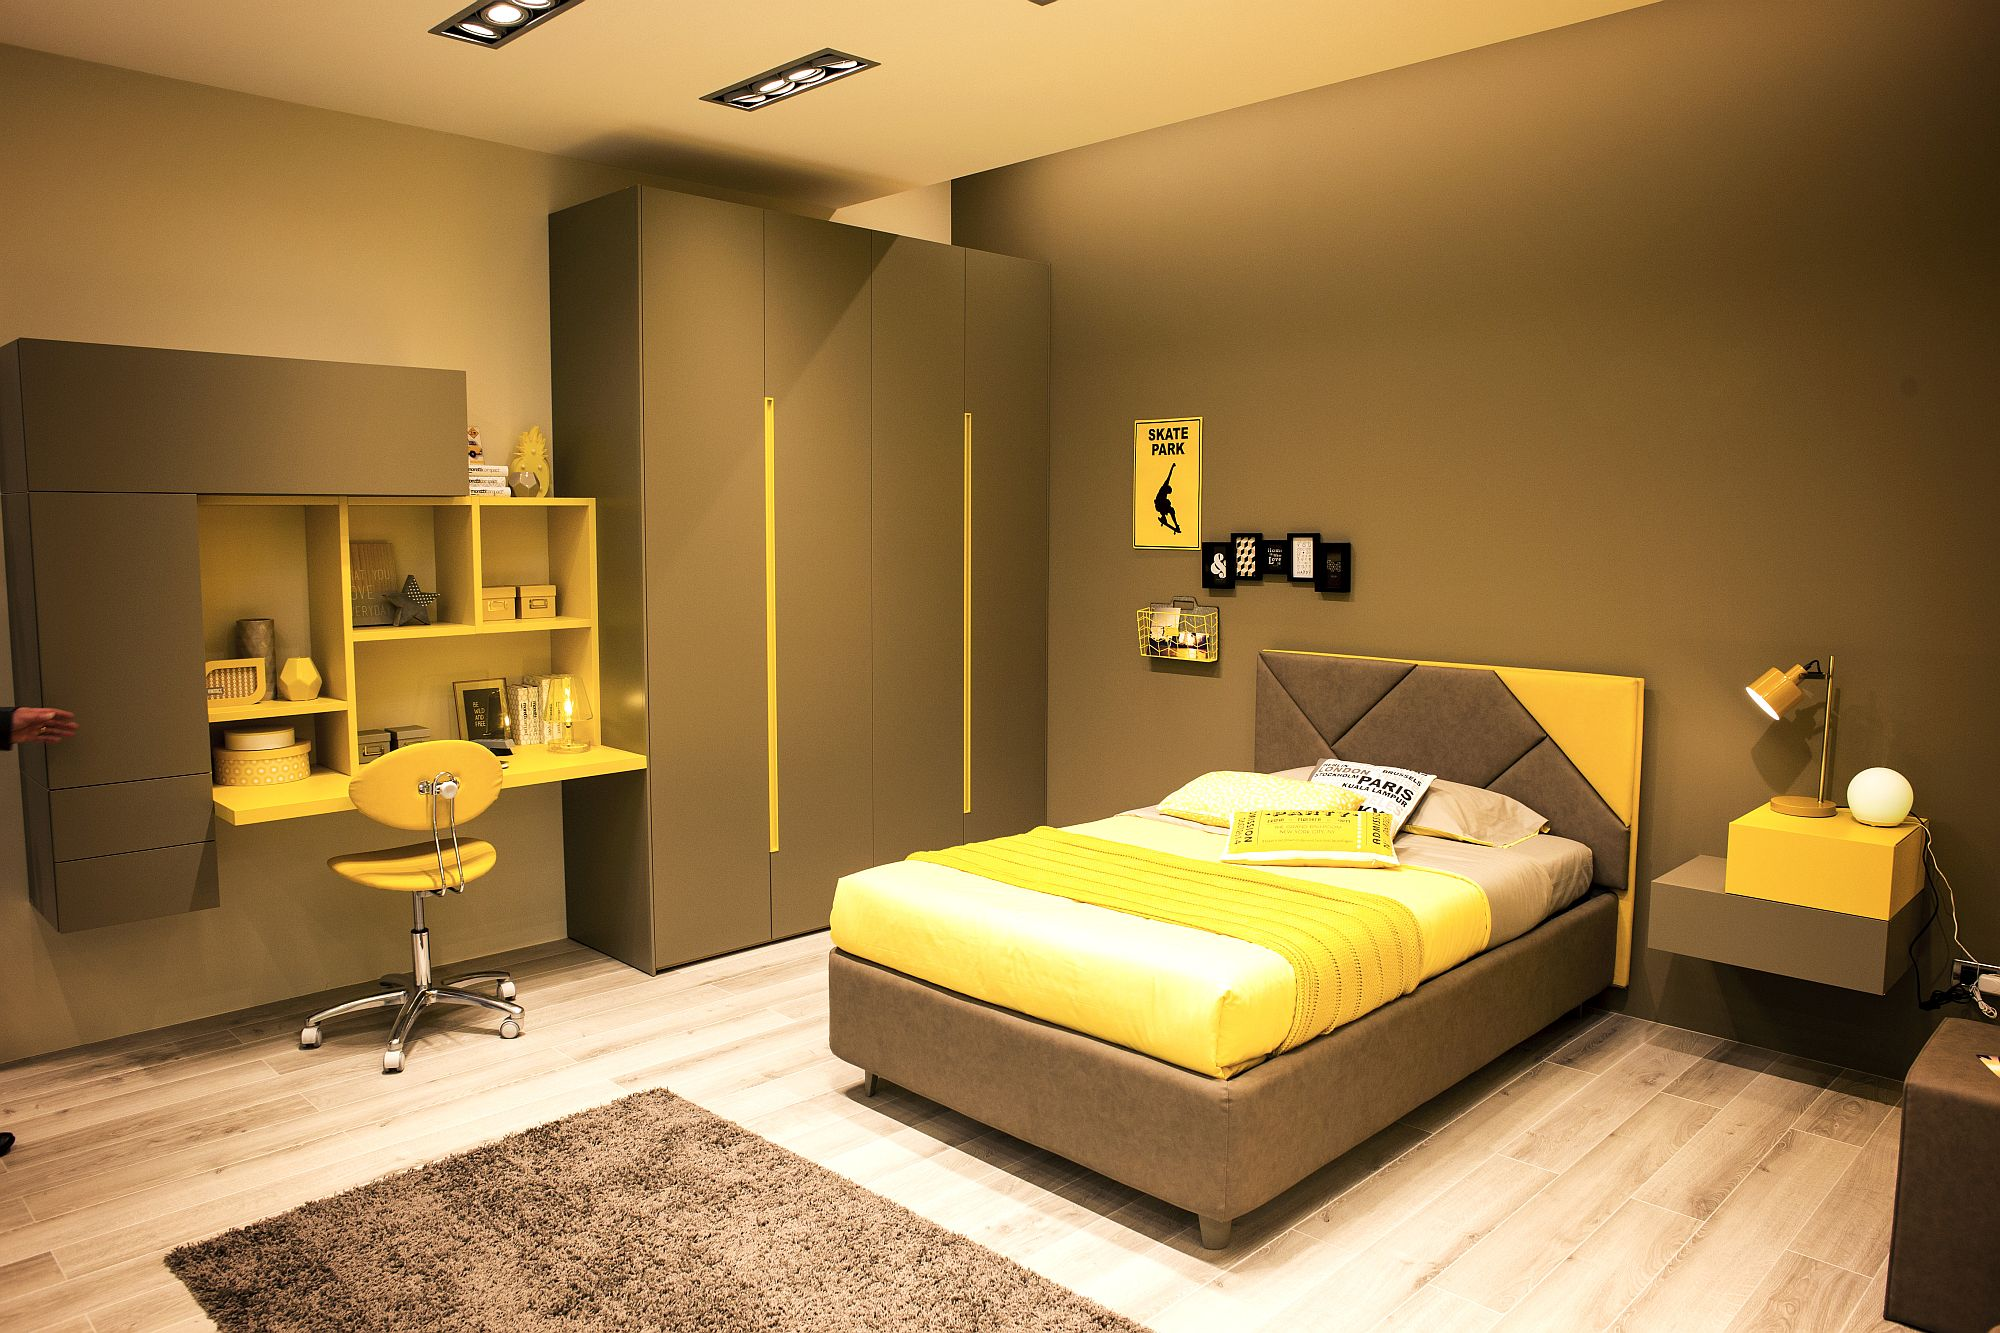 Stylish kids room in yellow and brown